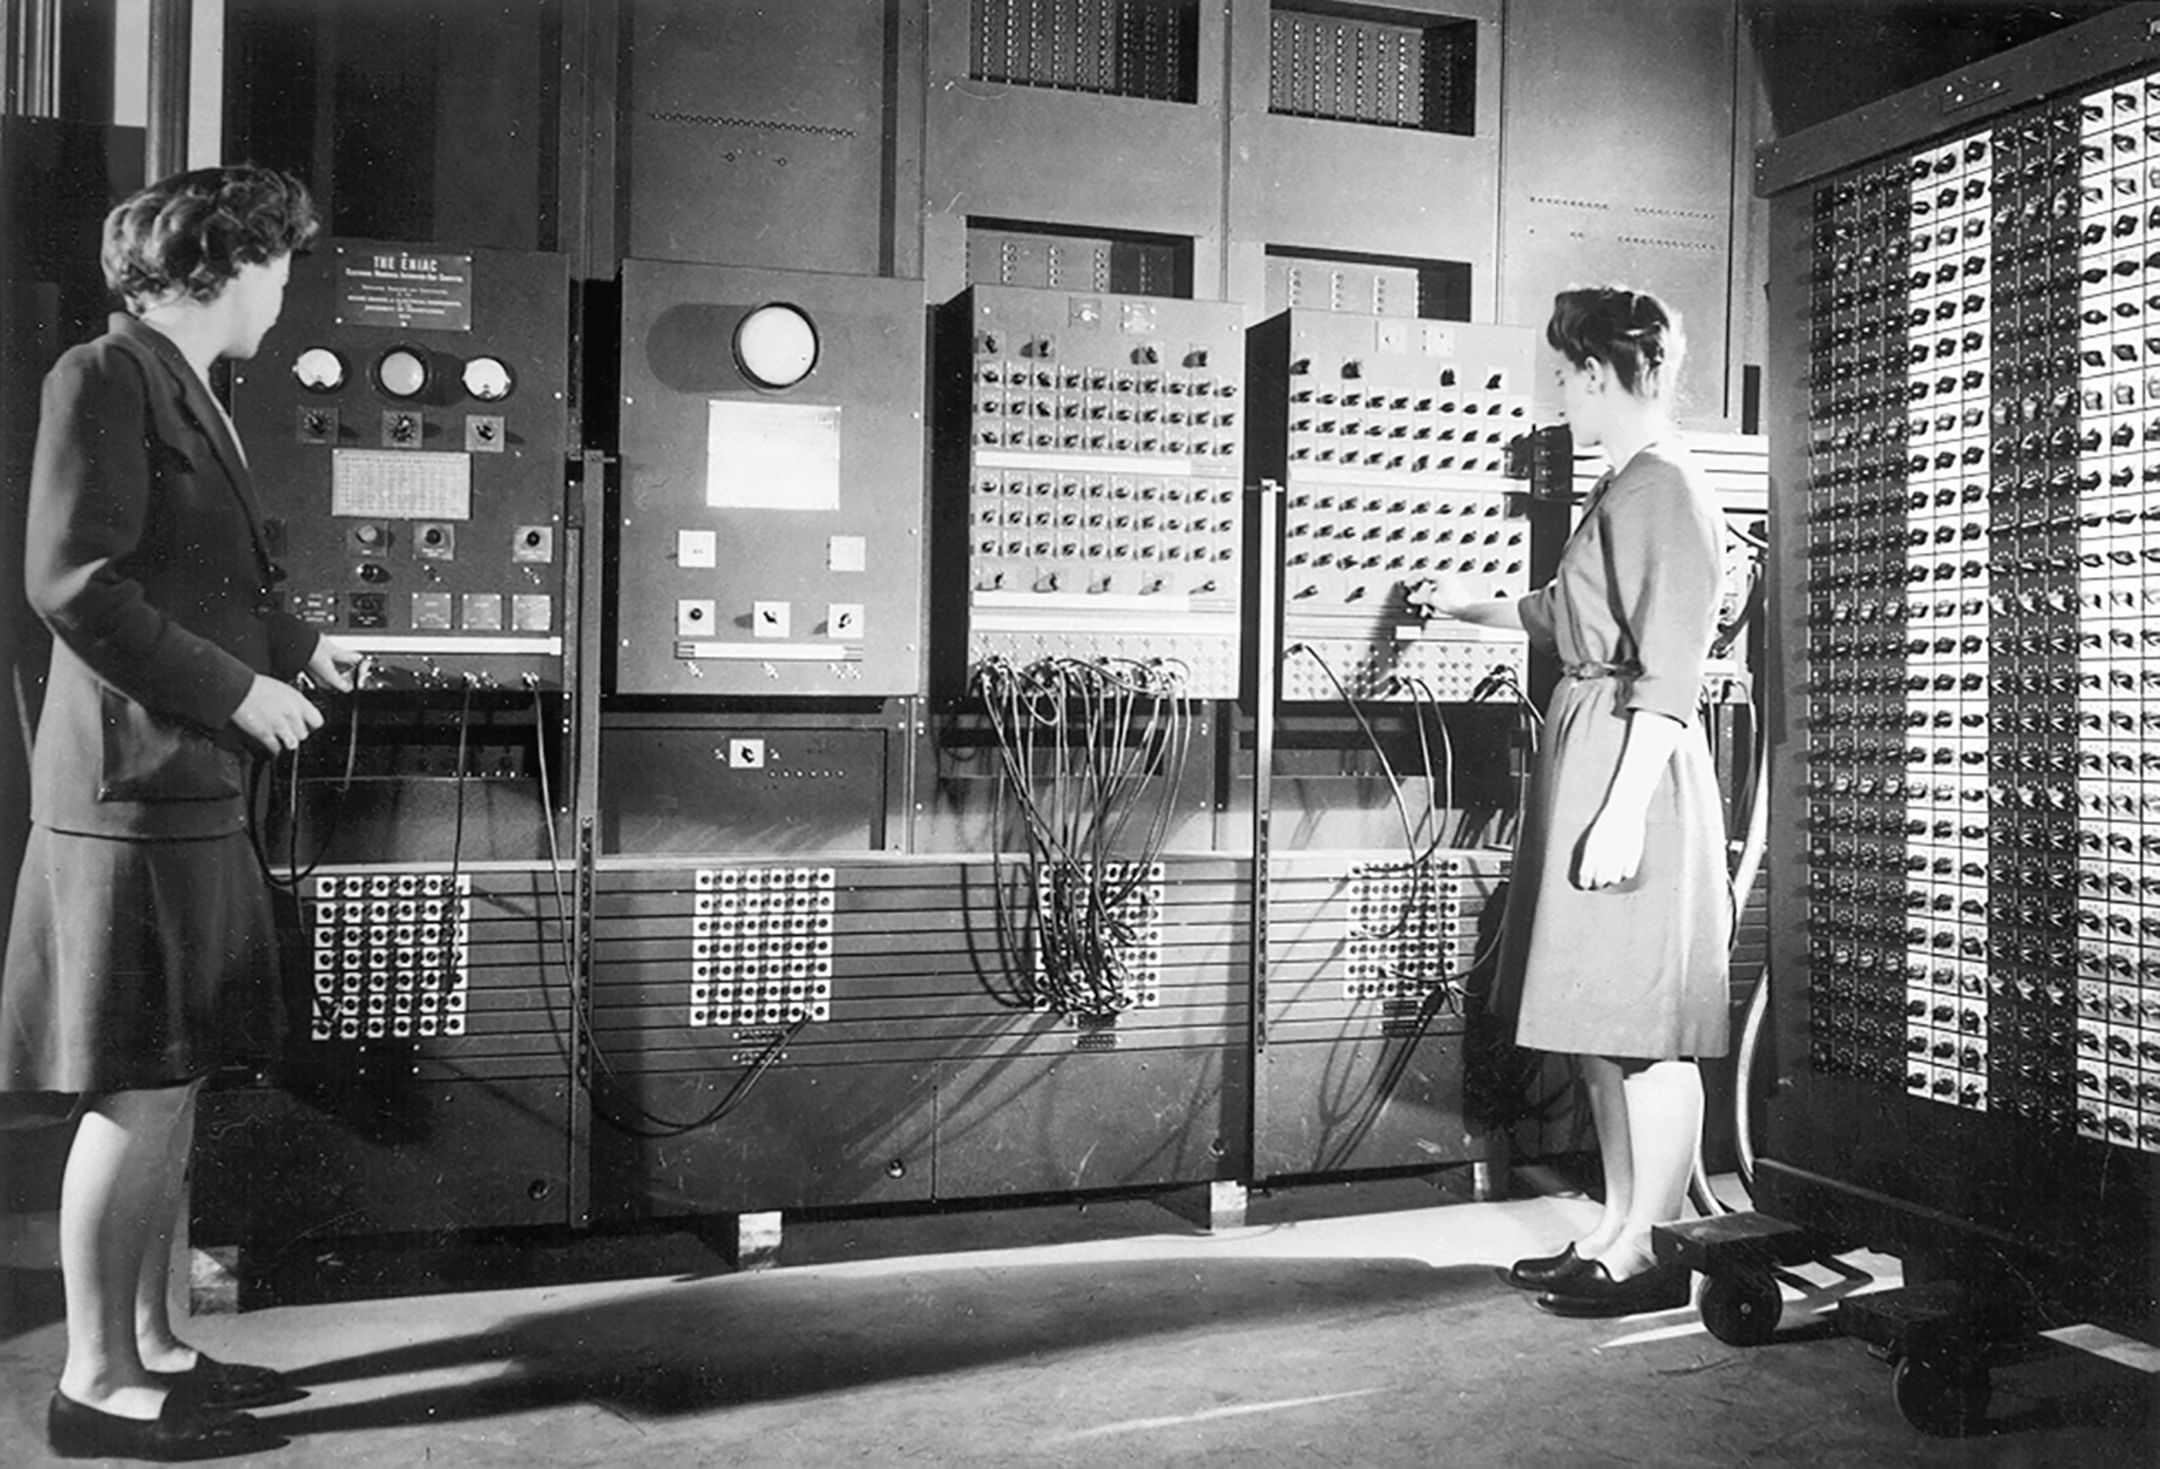 Black and white photograph of two women in the 1940s working on the world's first computer